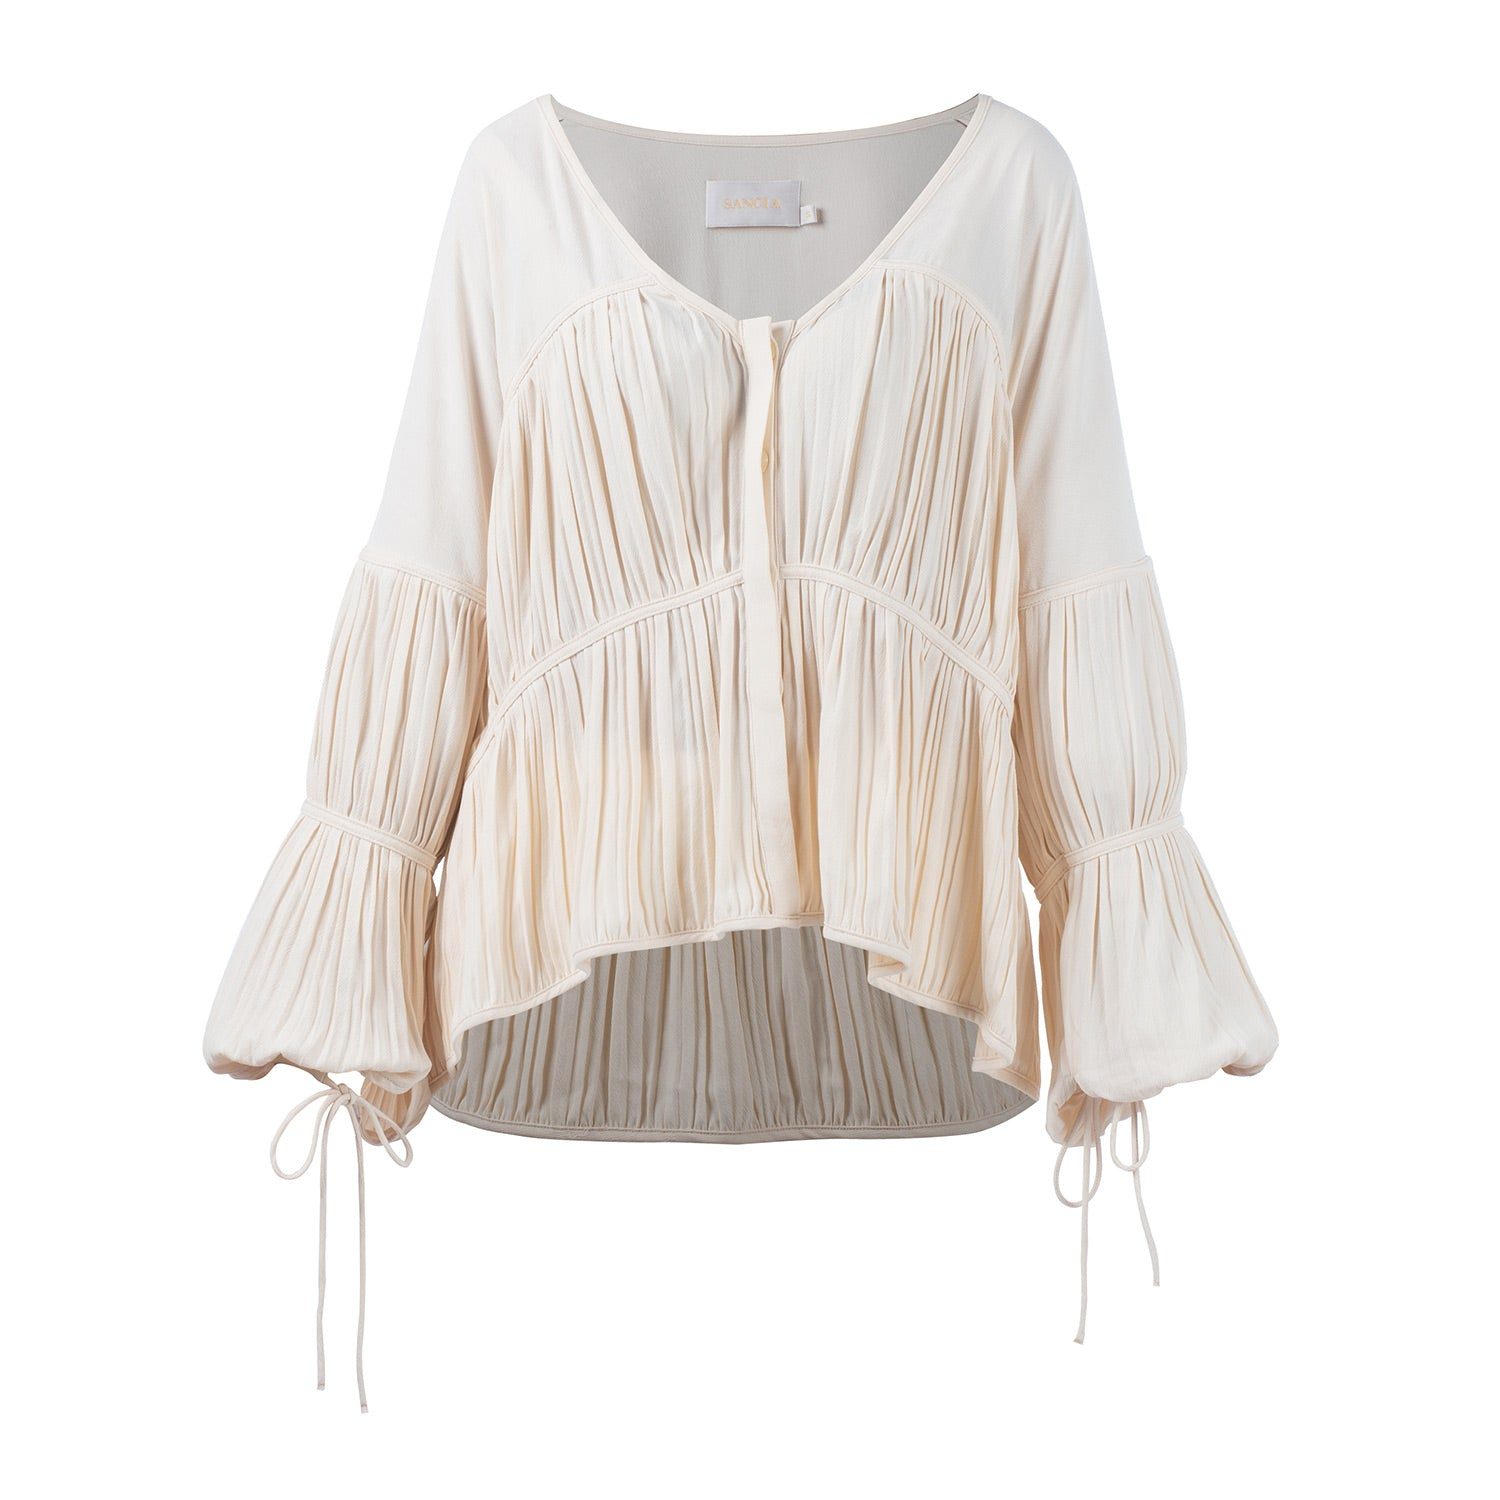 THE MARTA BLOUSE